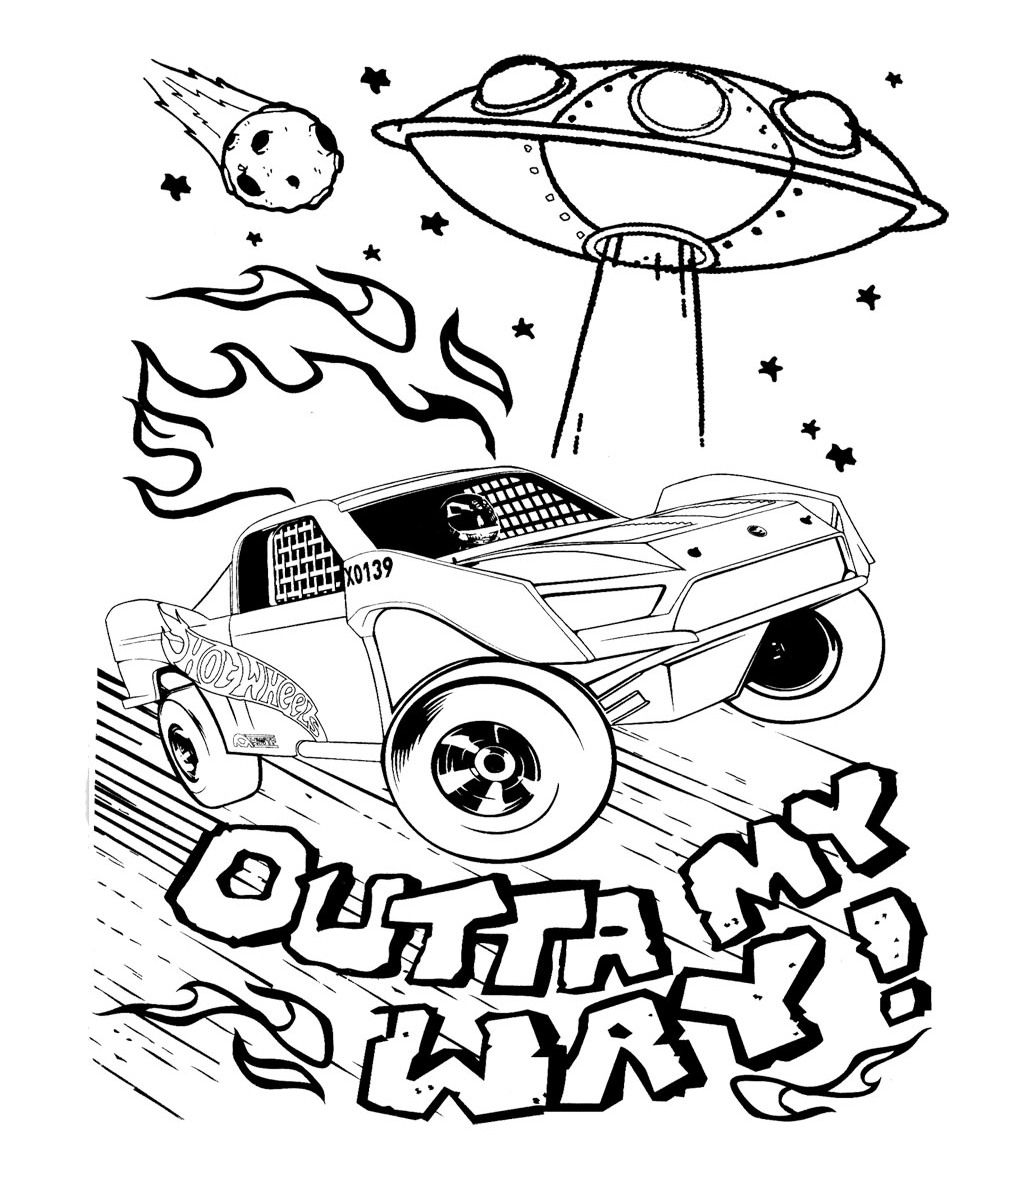 Car hot wheels and alien spacecraft coloring pages sunday school